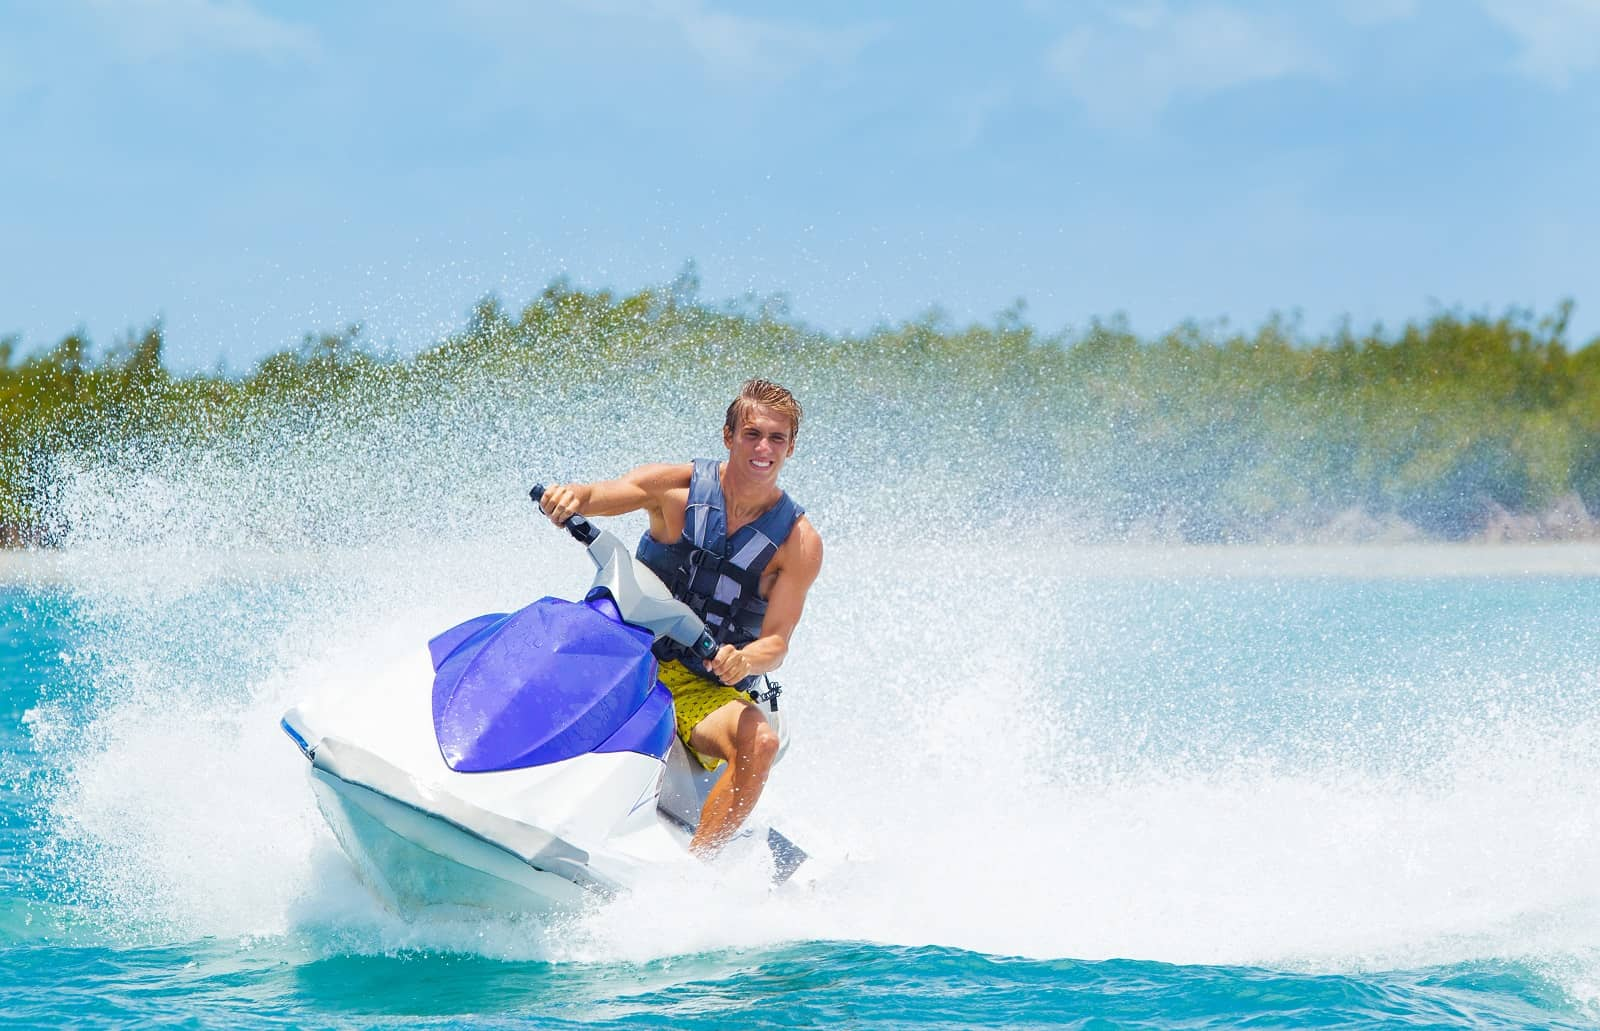 Man turning jet ski on bright blue water